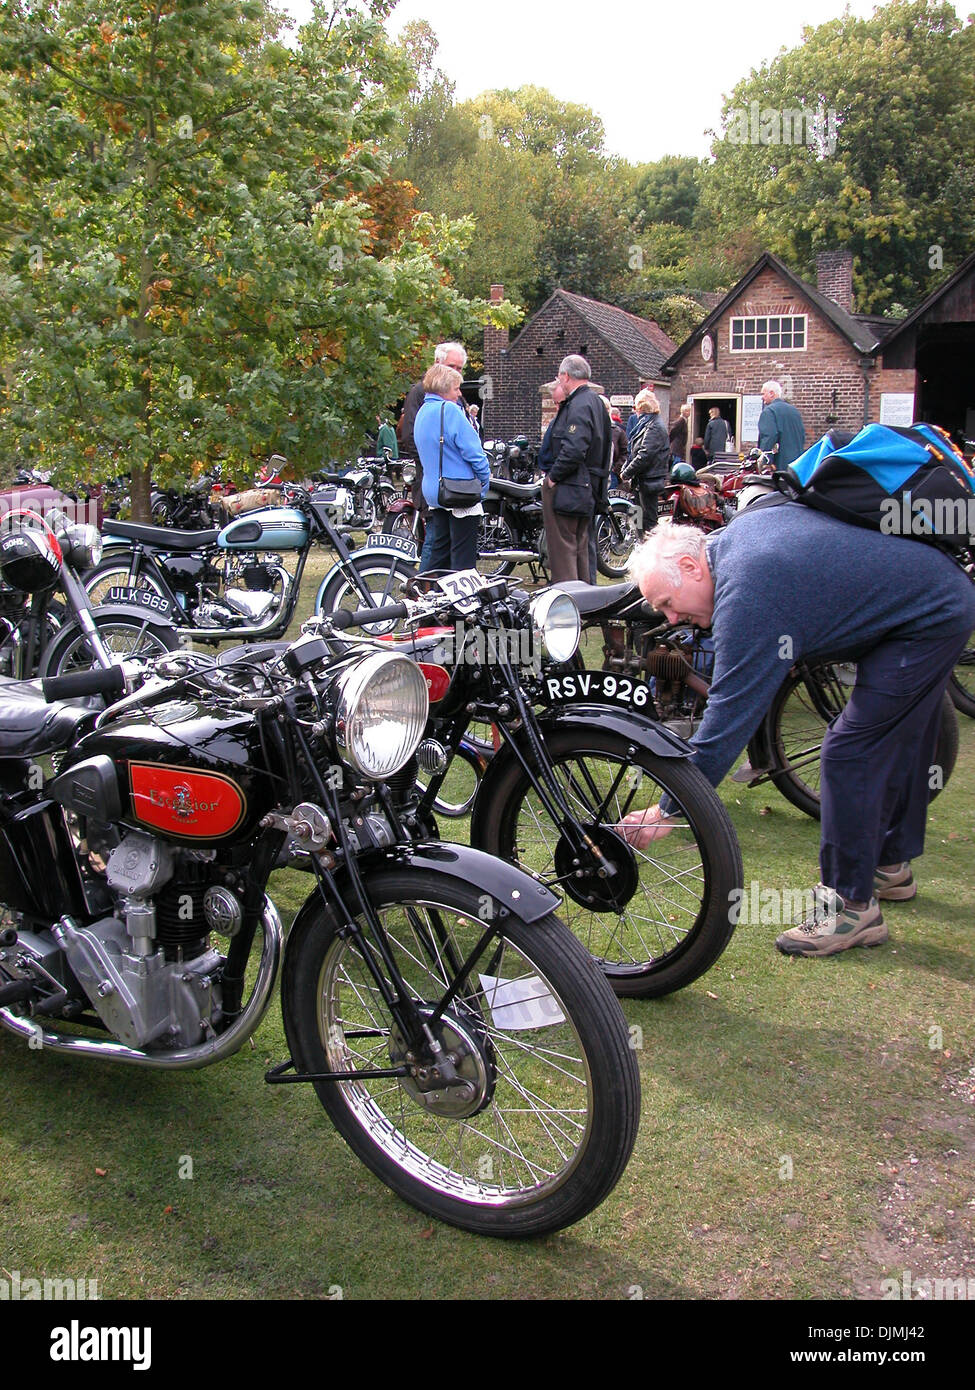 Vintage motorcycle enthusiasts - Stock Image